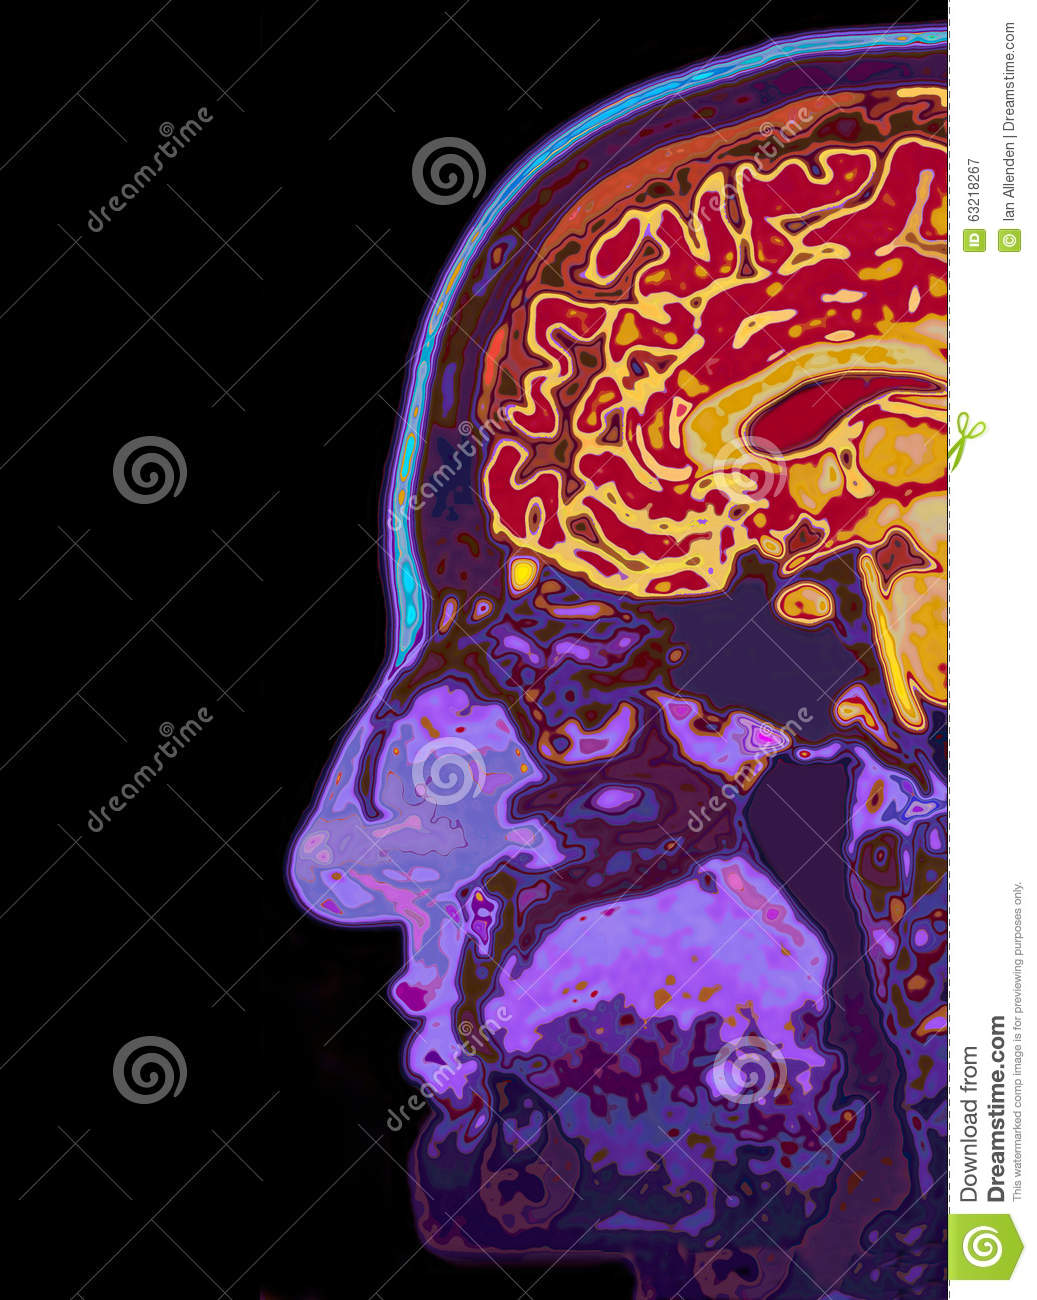 MRI Scan Of Head Showing Brain